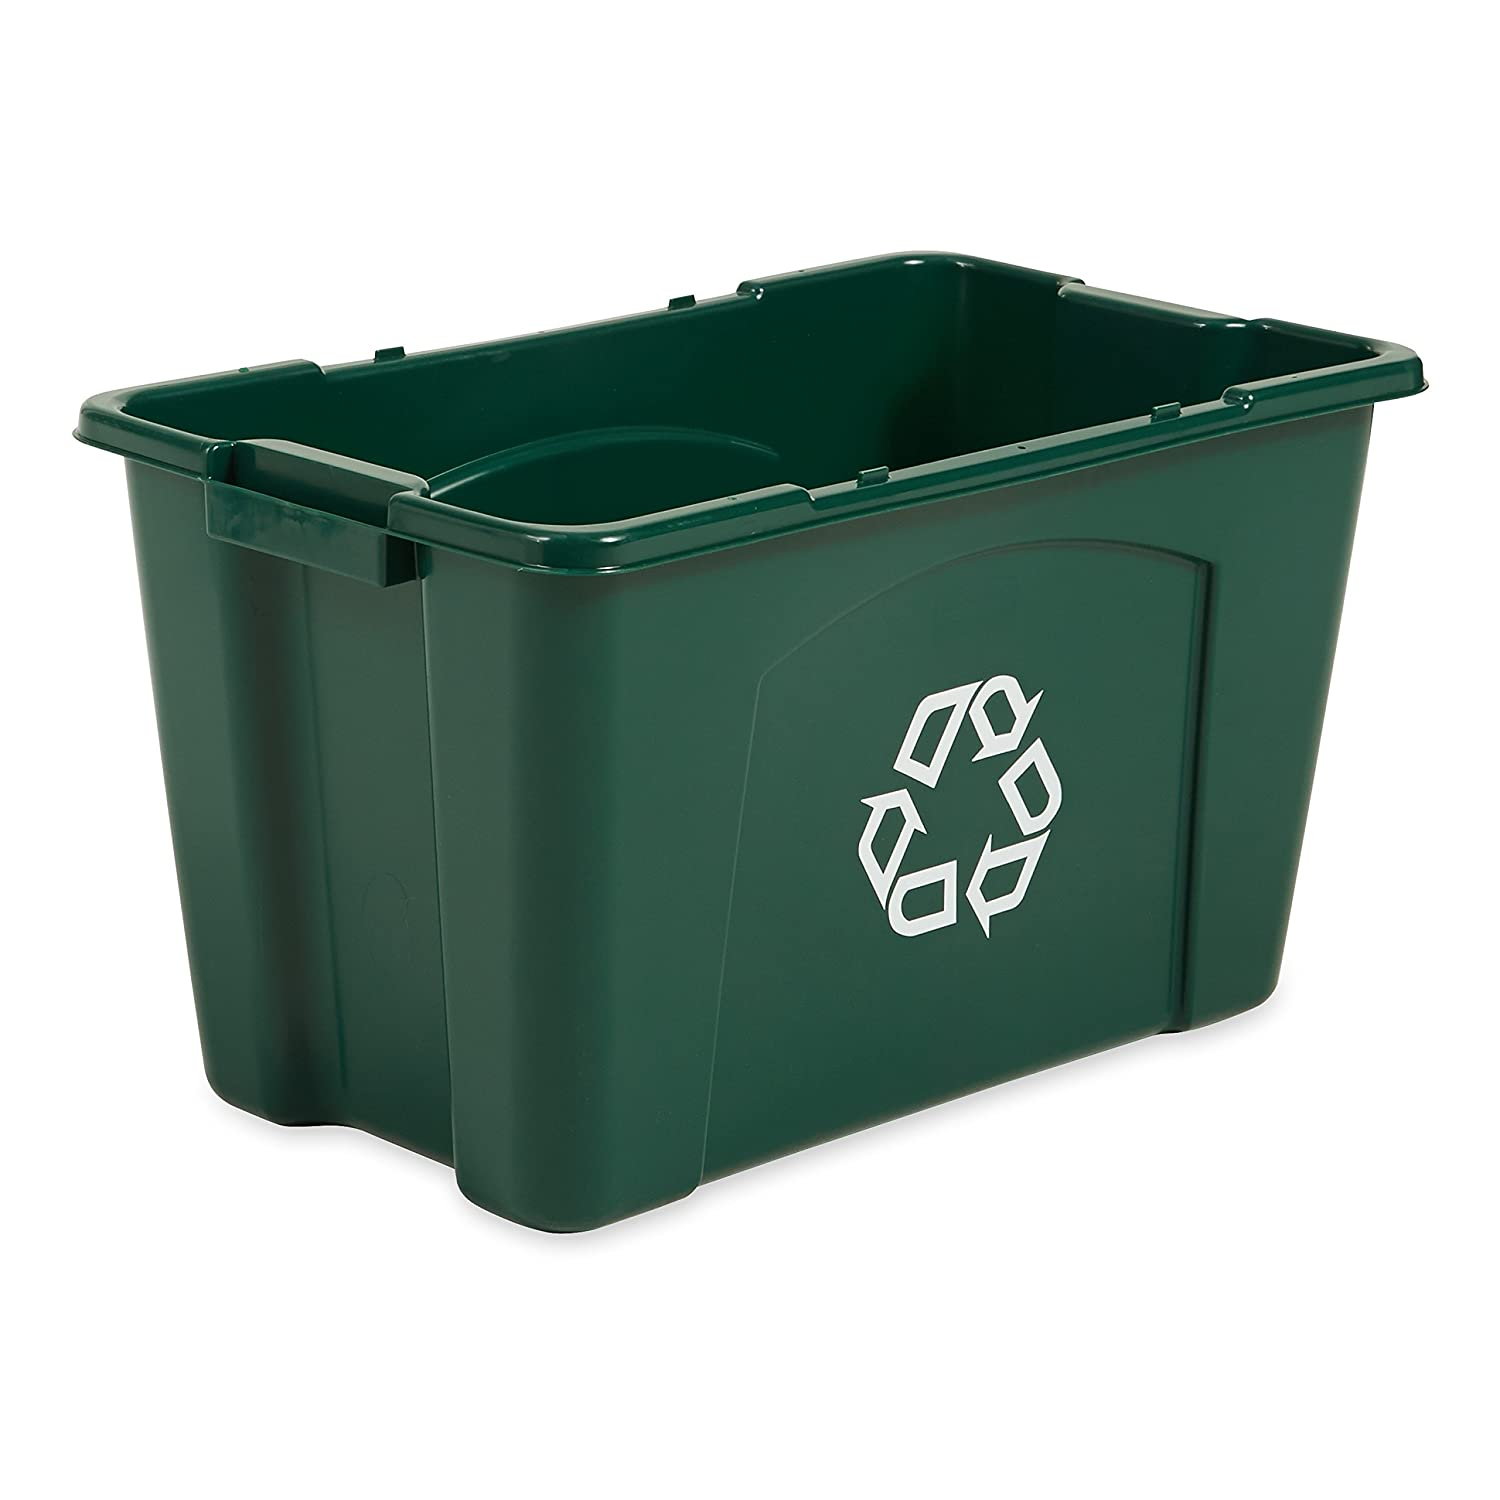 Rubbermaid Commercial FG571873GRN Stackable Recycling Box, 18-gallon, Green Rubbermaid Commercial Products